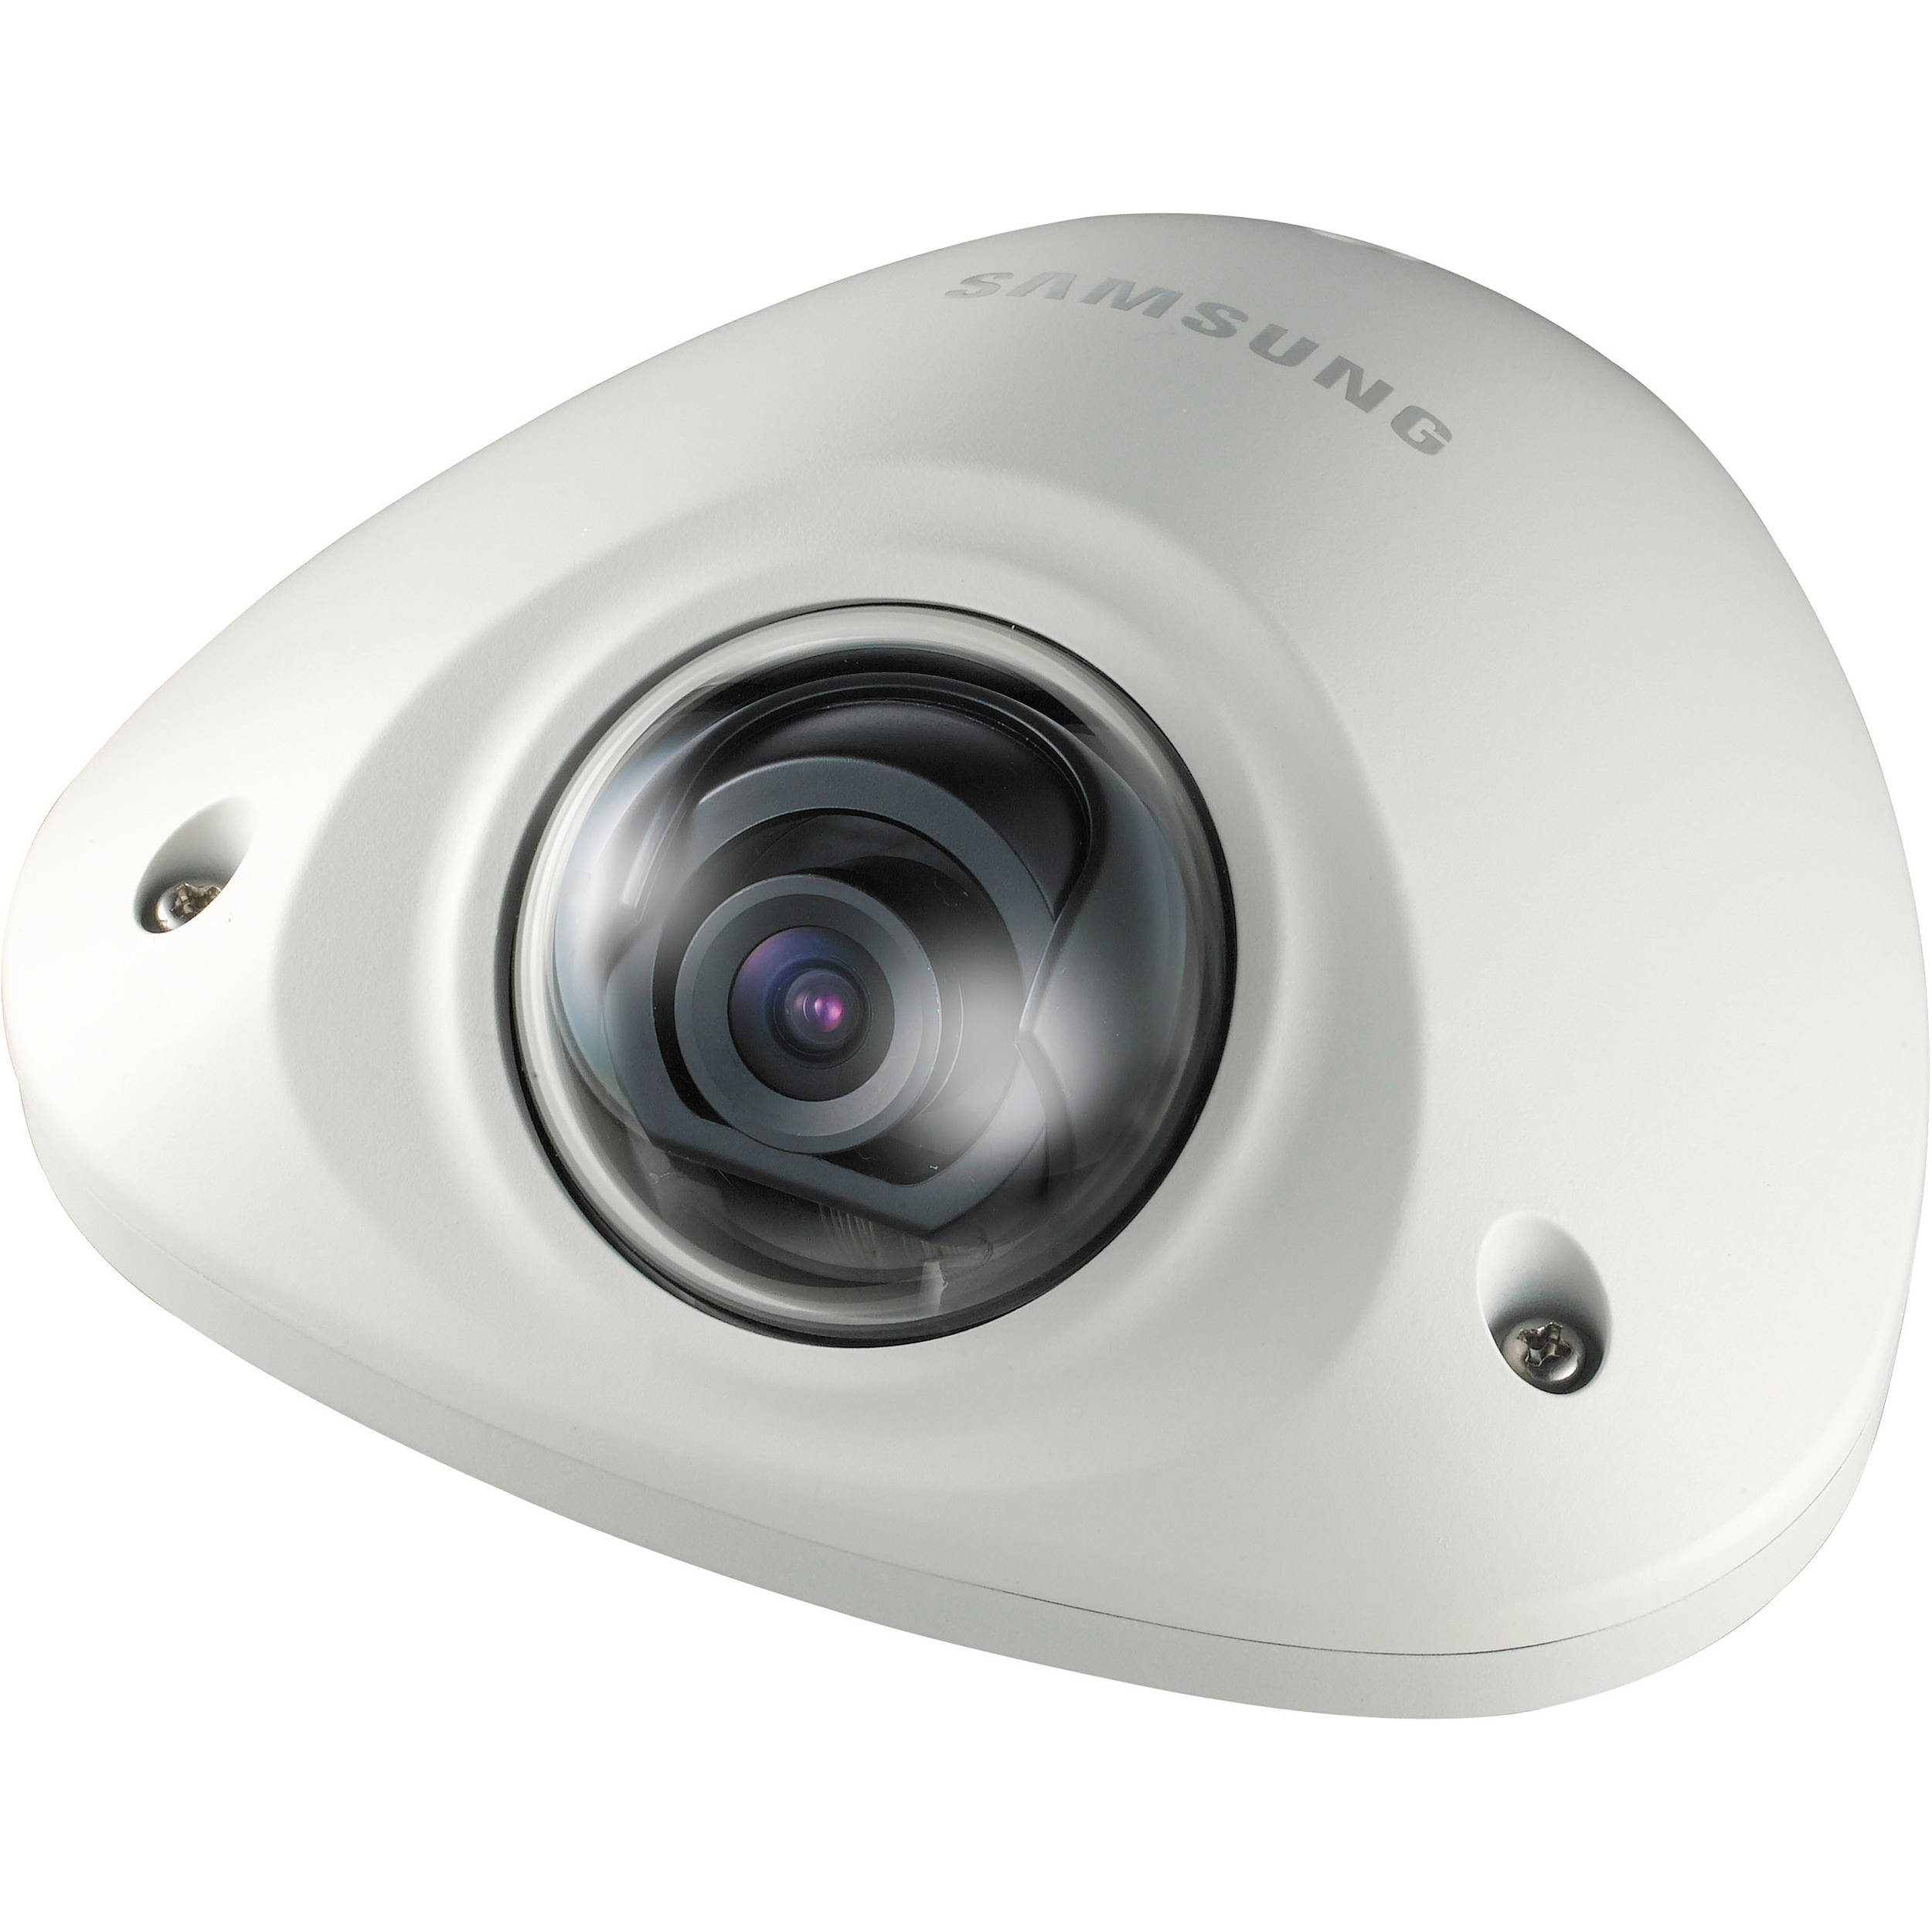 Samsung SNV-1080 Network Camera Drivers for Mac Download